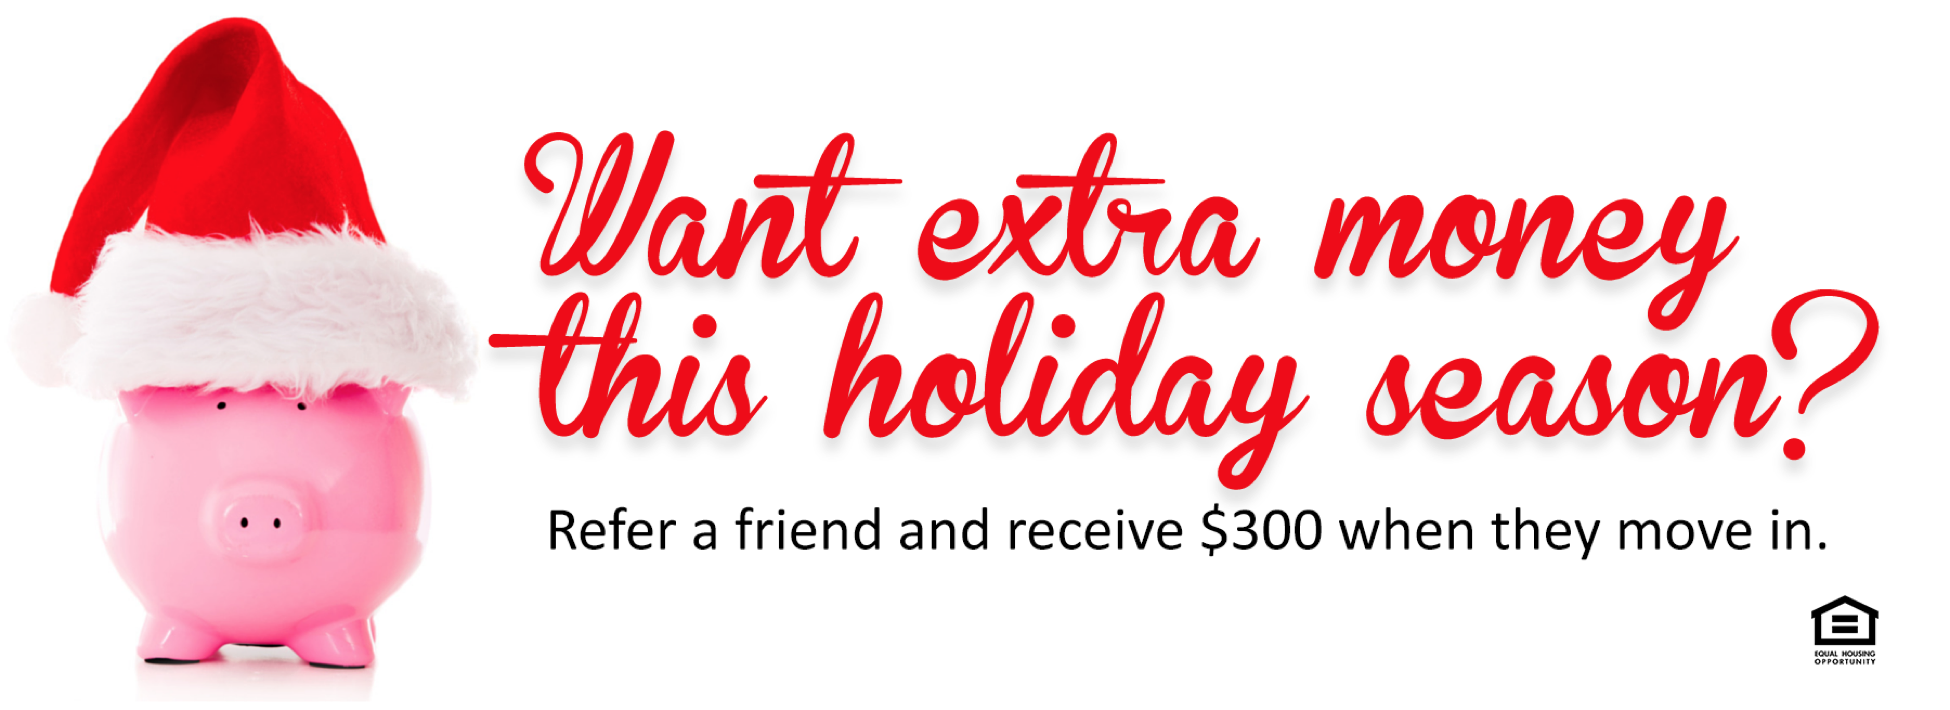 extra money this holiday season.png